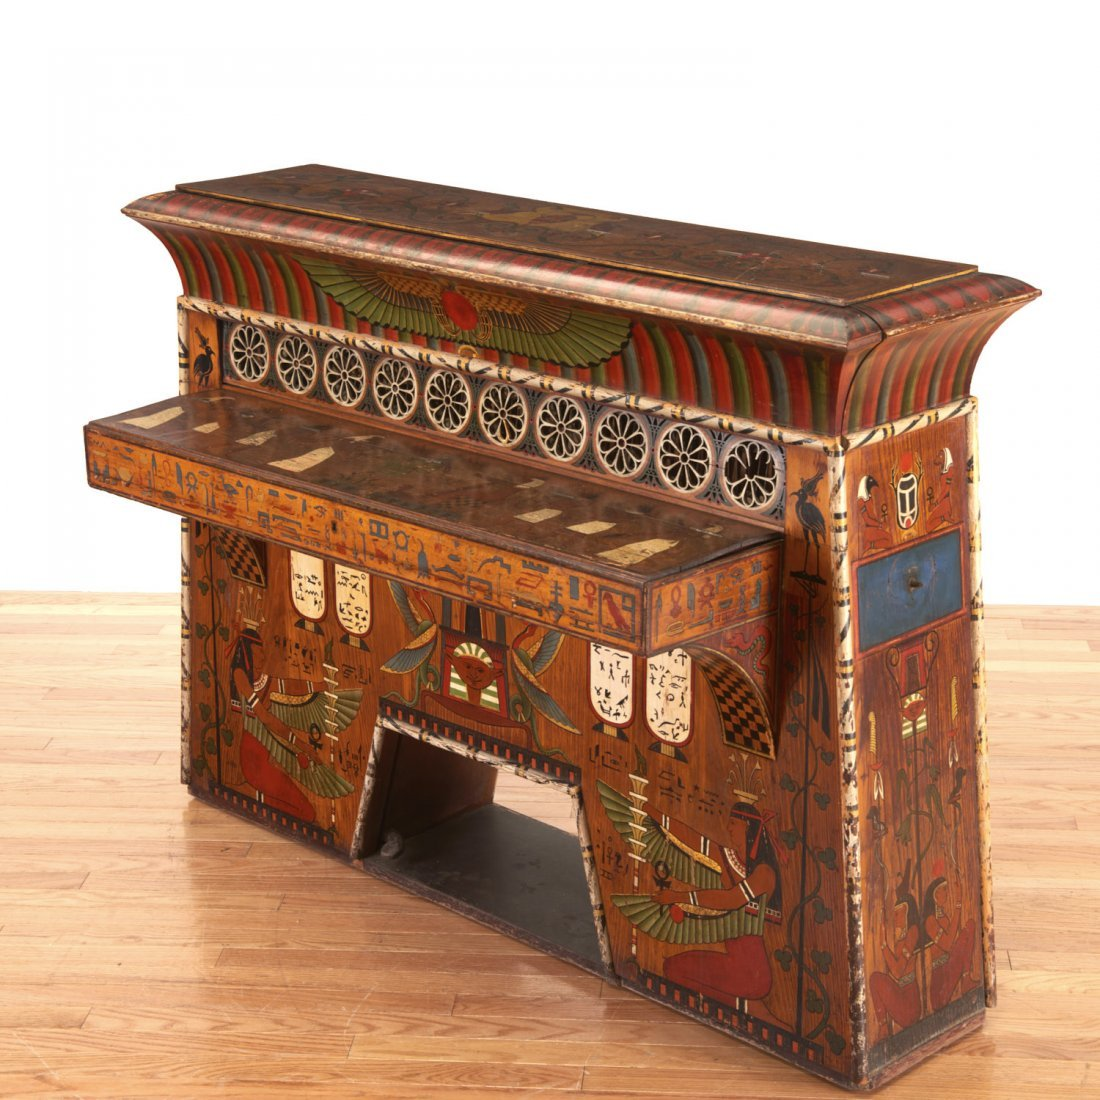 Egyptian Revival spinet piano - 6